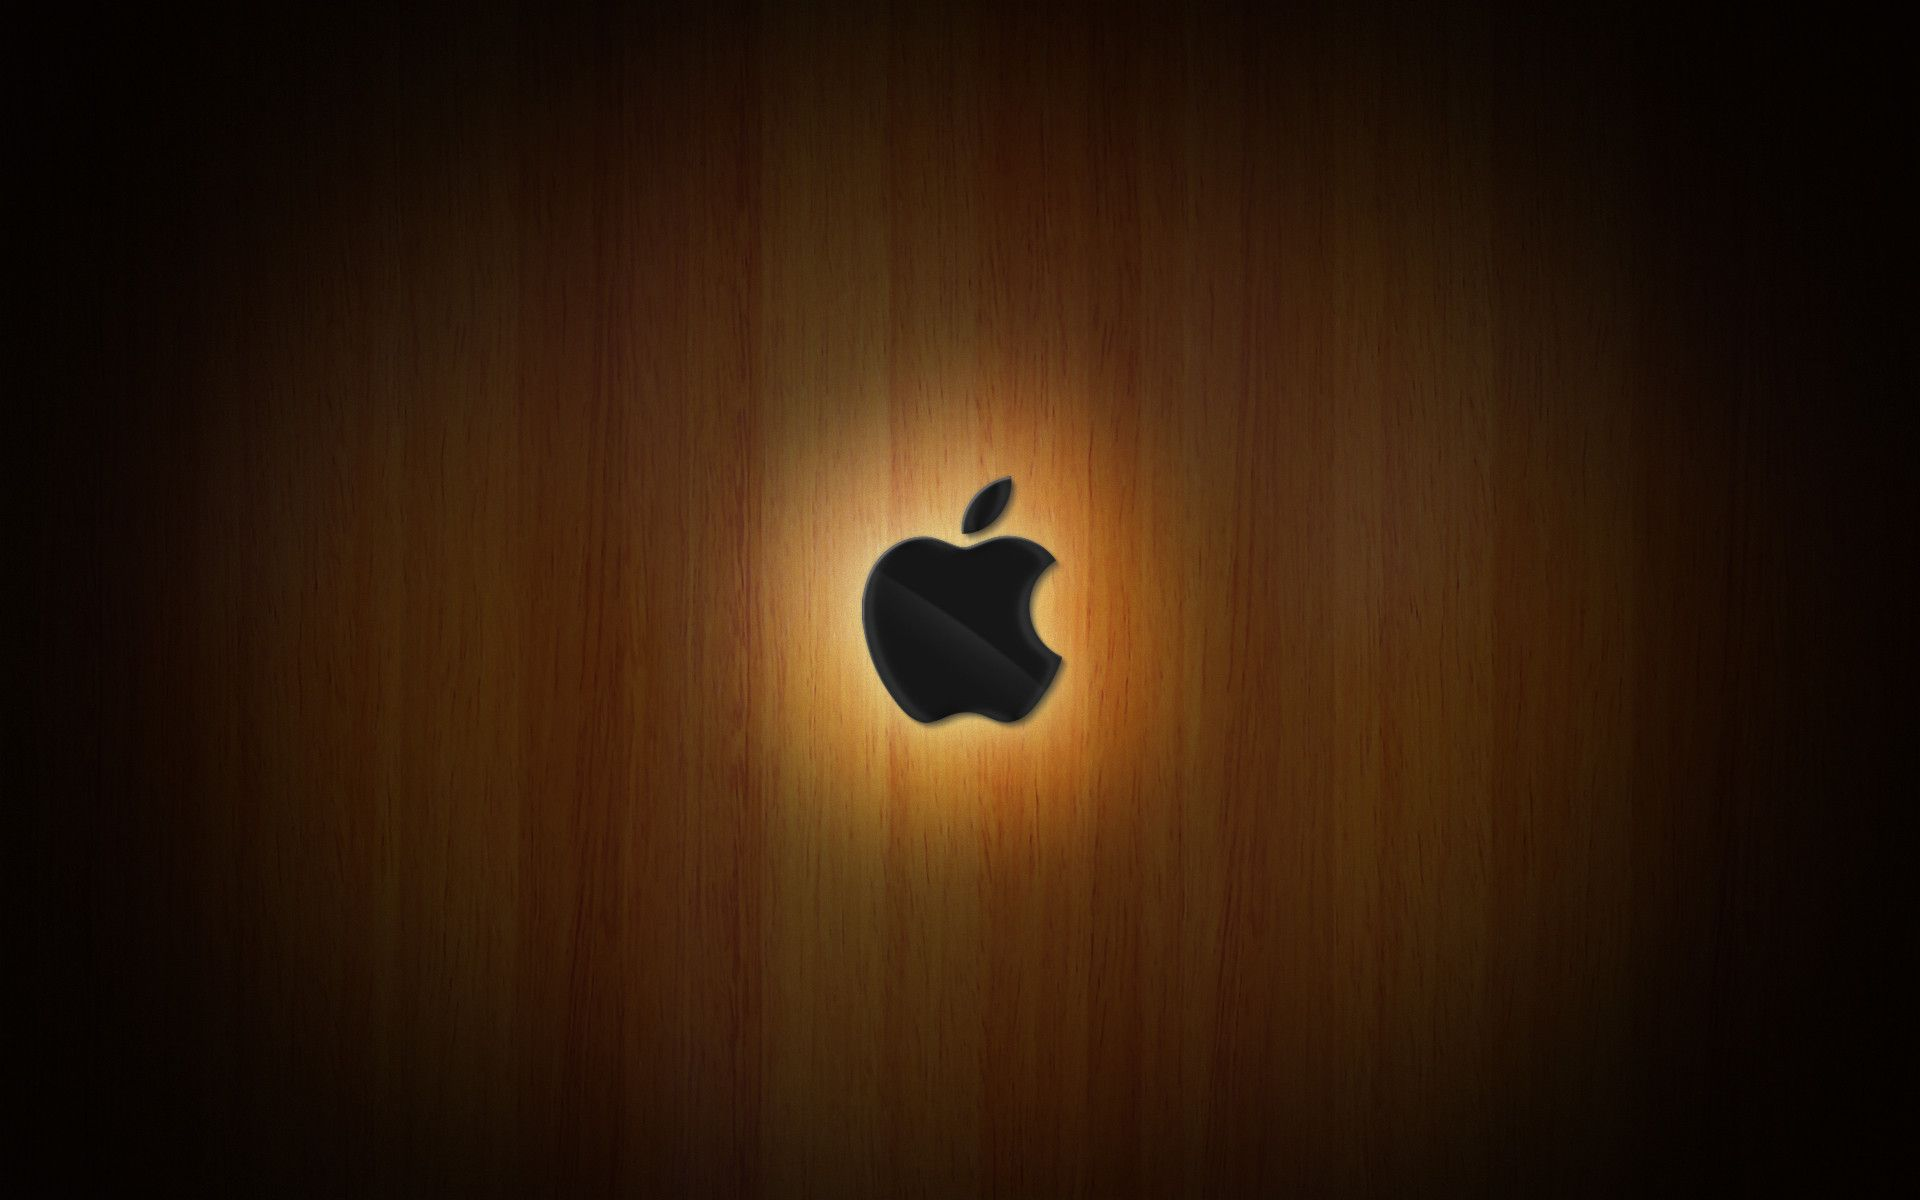 Apple Wallpapers HD 1080p - Wallpaper Cave